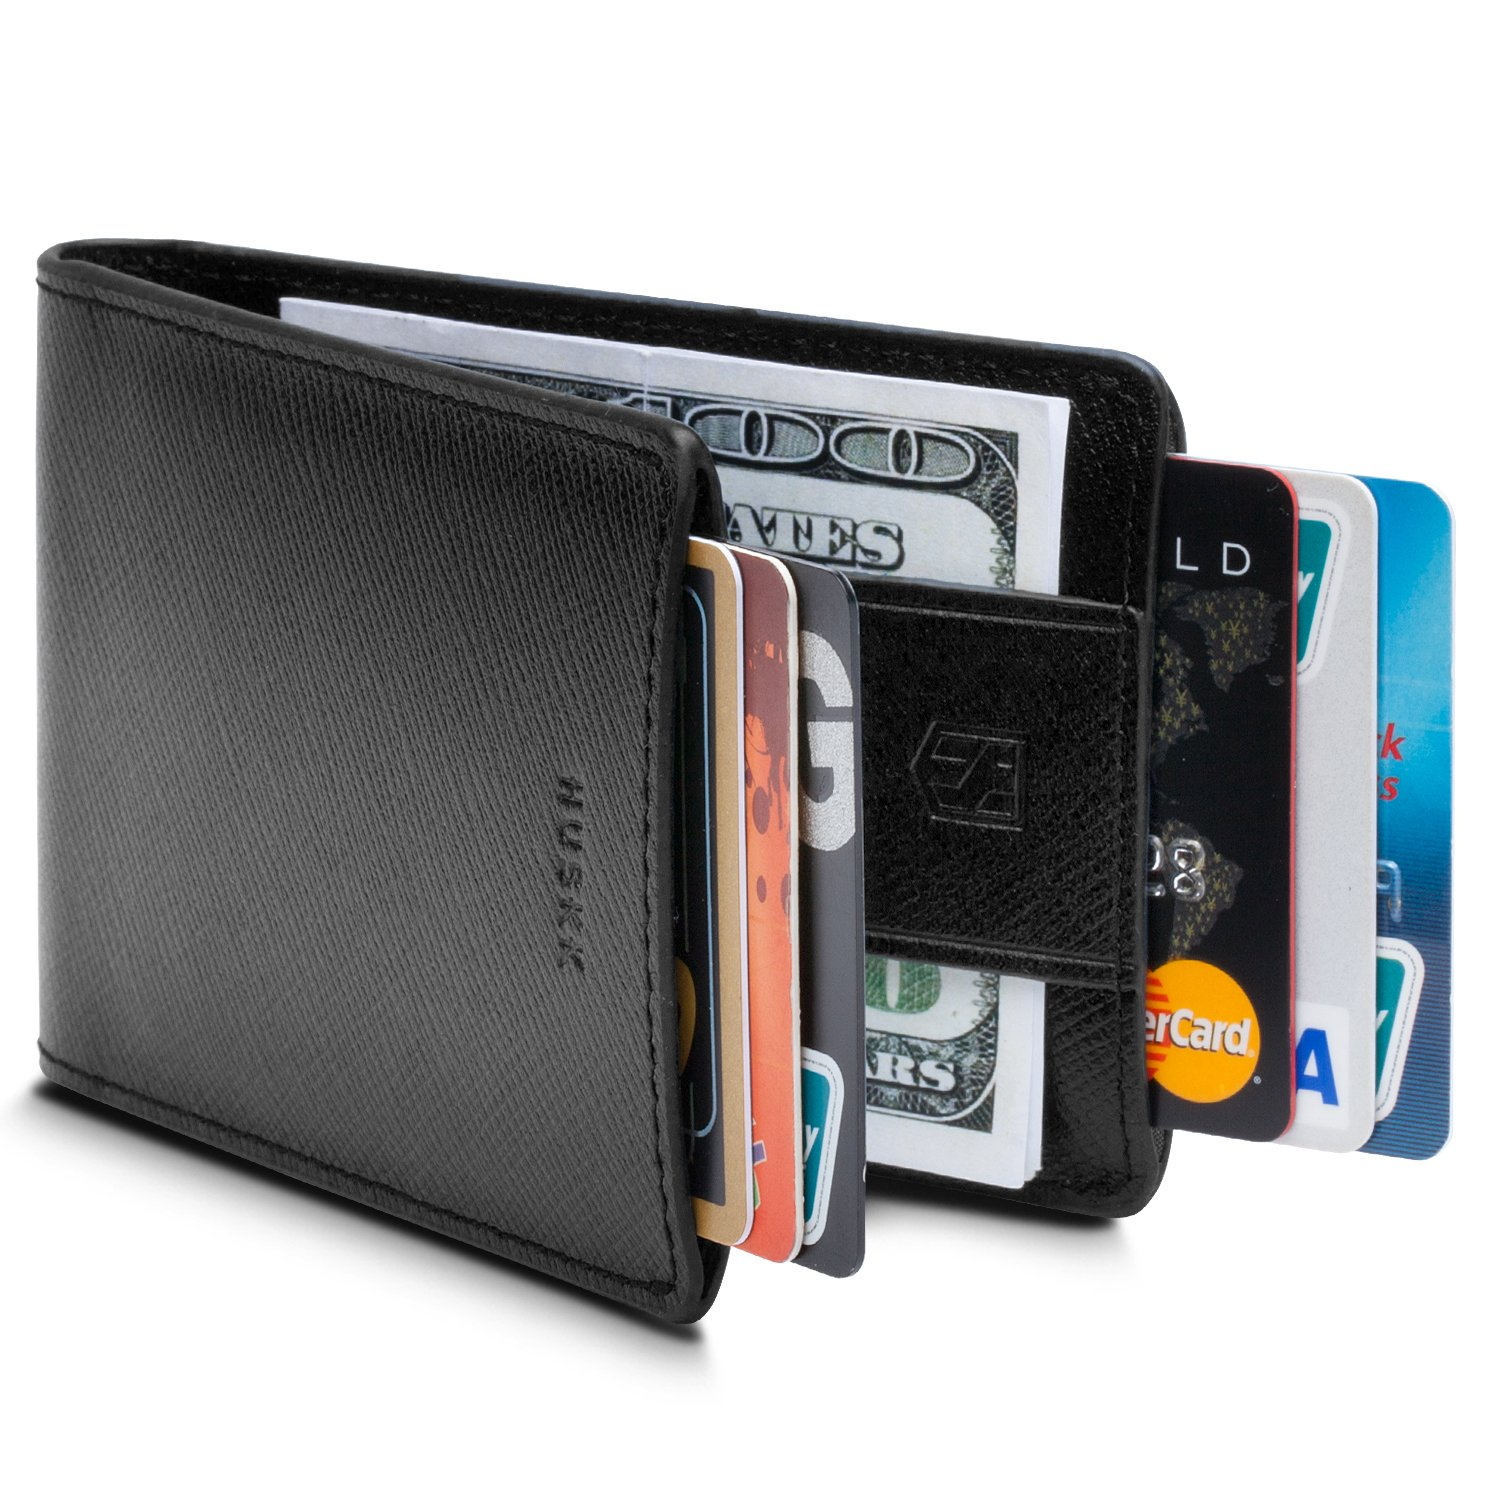 cdc70ae570b Amazon.com  Men Wallet - RFID Minimalist Slim Front Pocket Card Travel  Holder Clip D1  Shoes